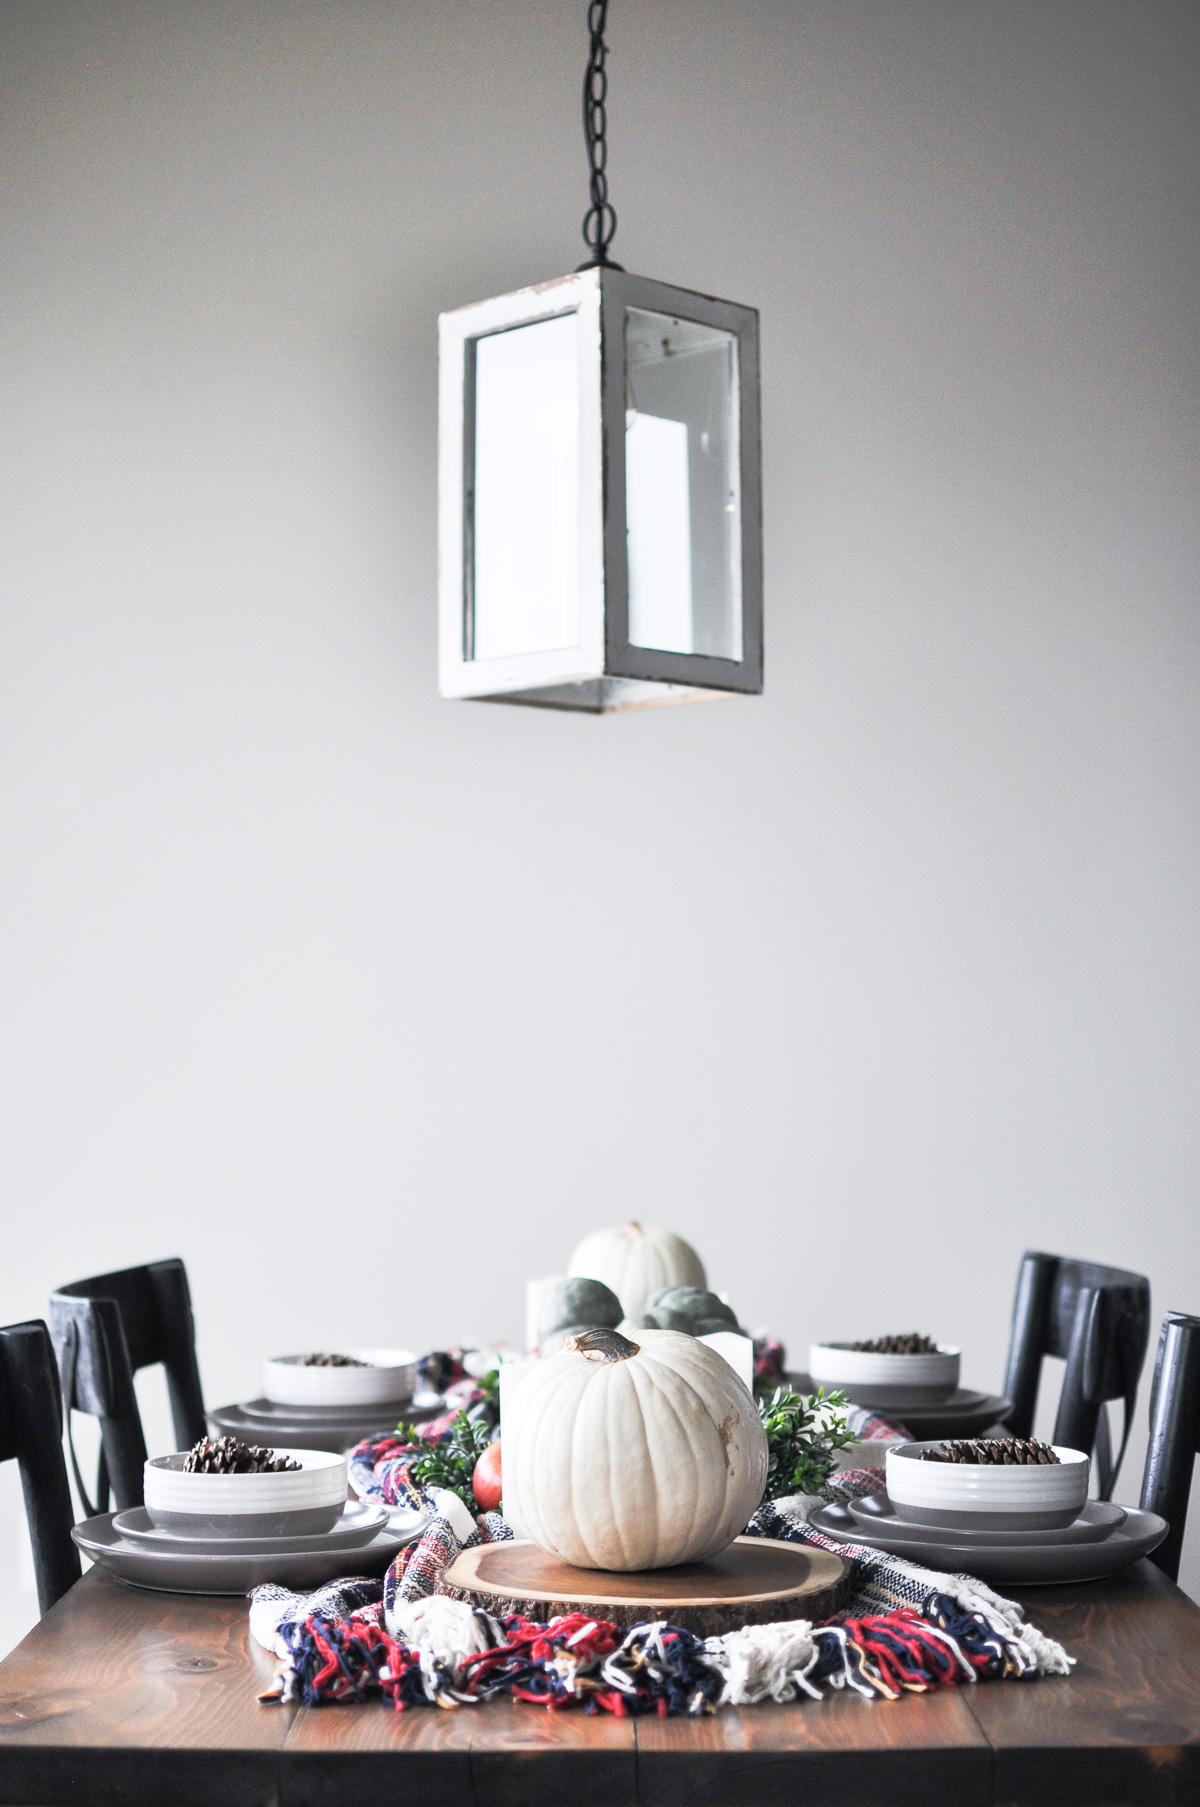 https://cherishedbliss.com/a-simple-cozy-fall-tablescape/